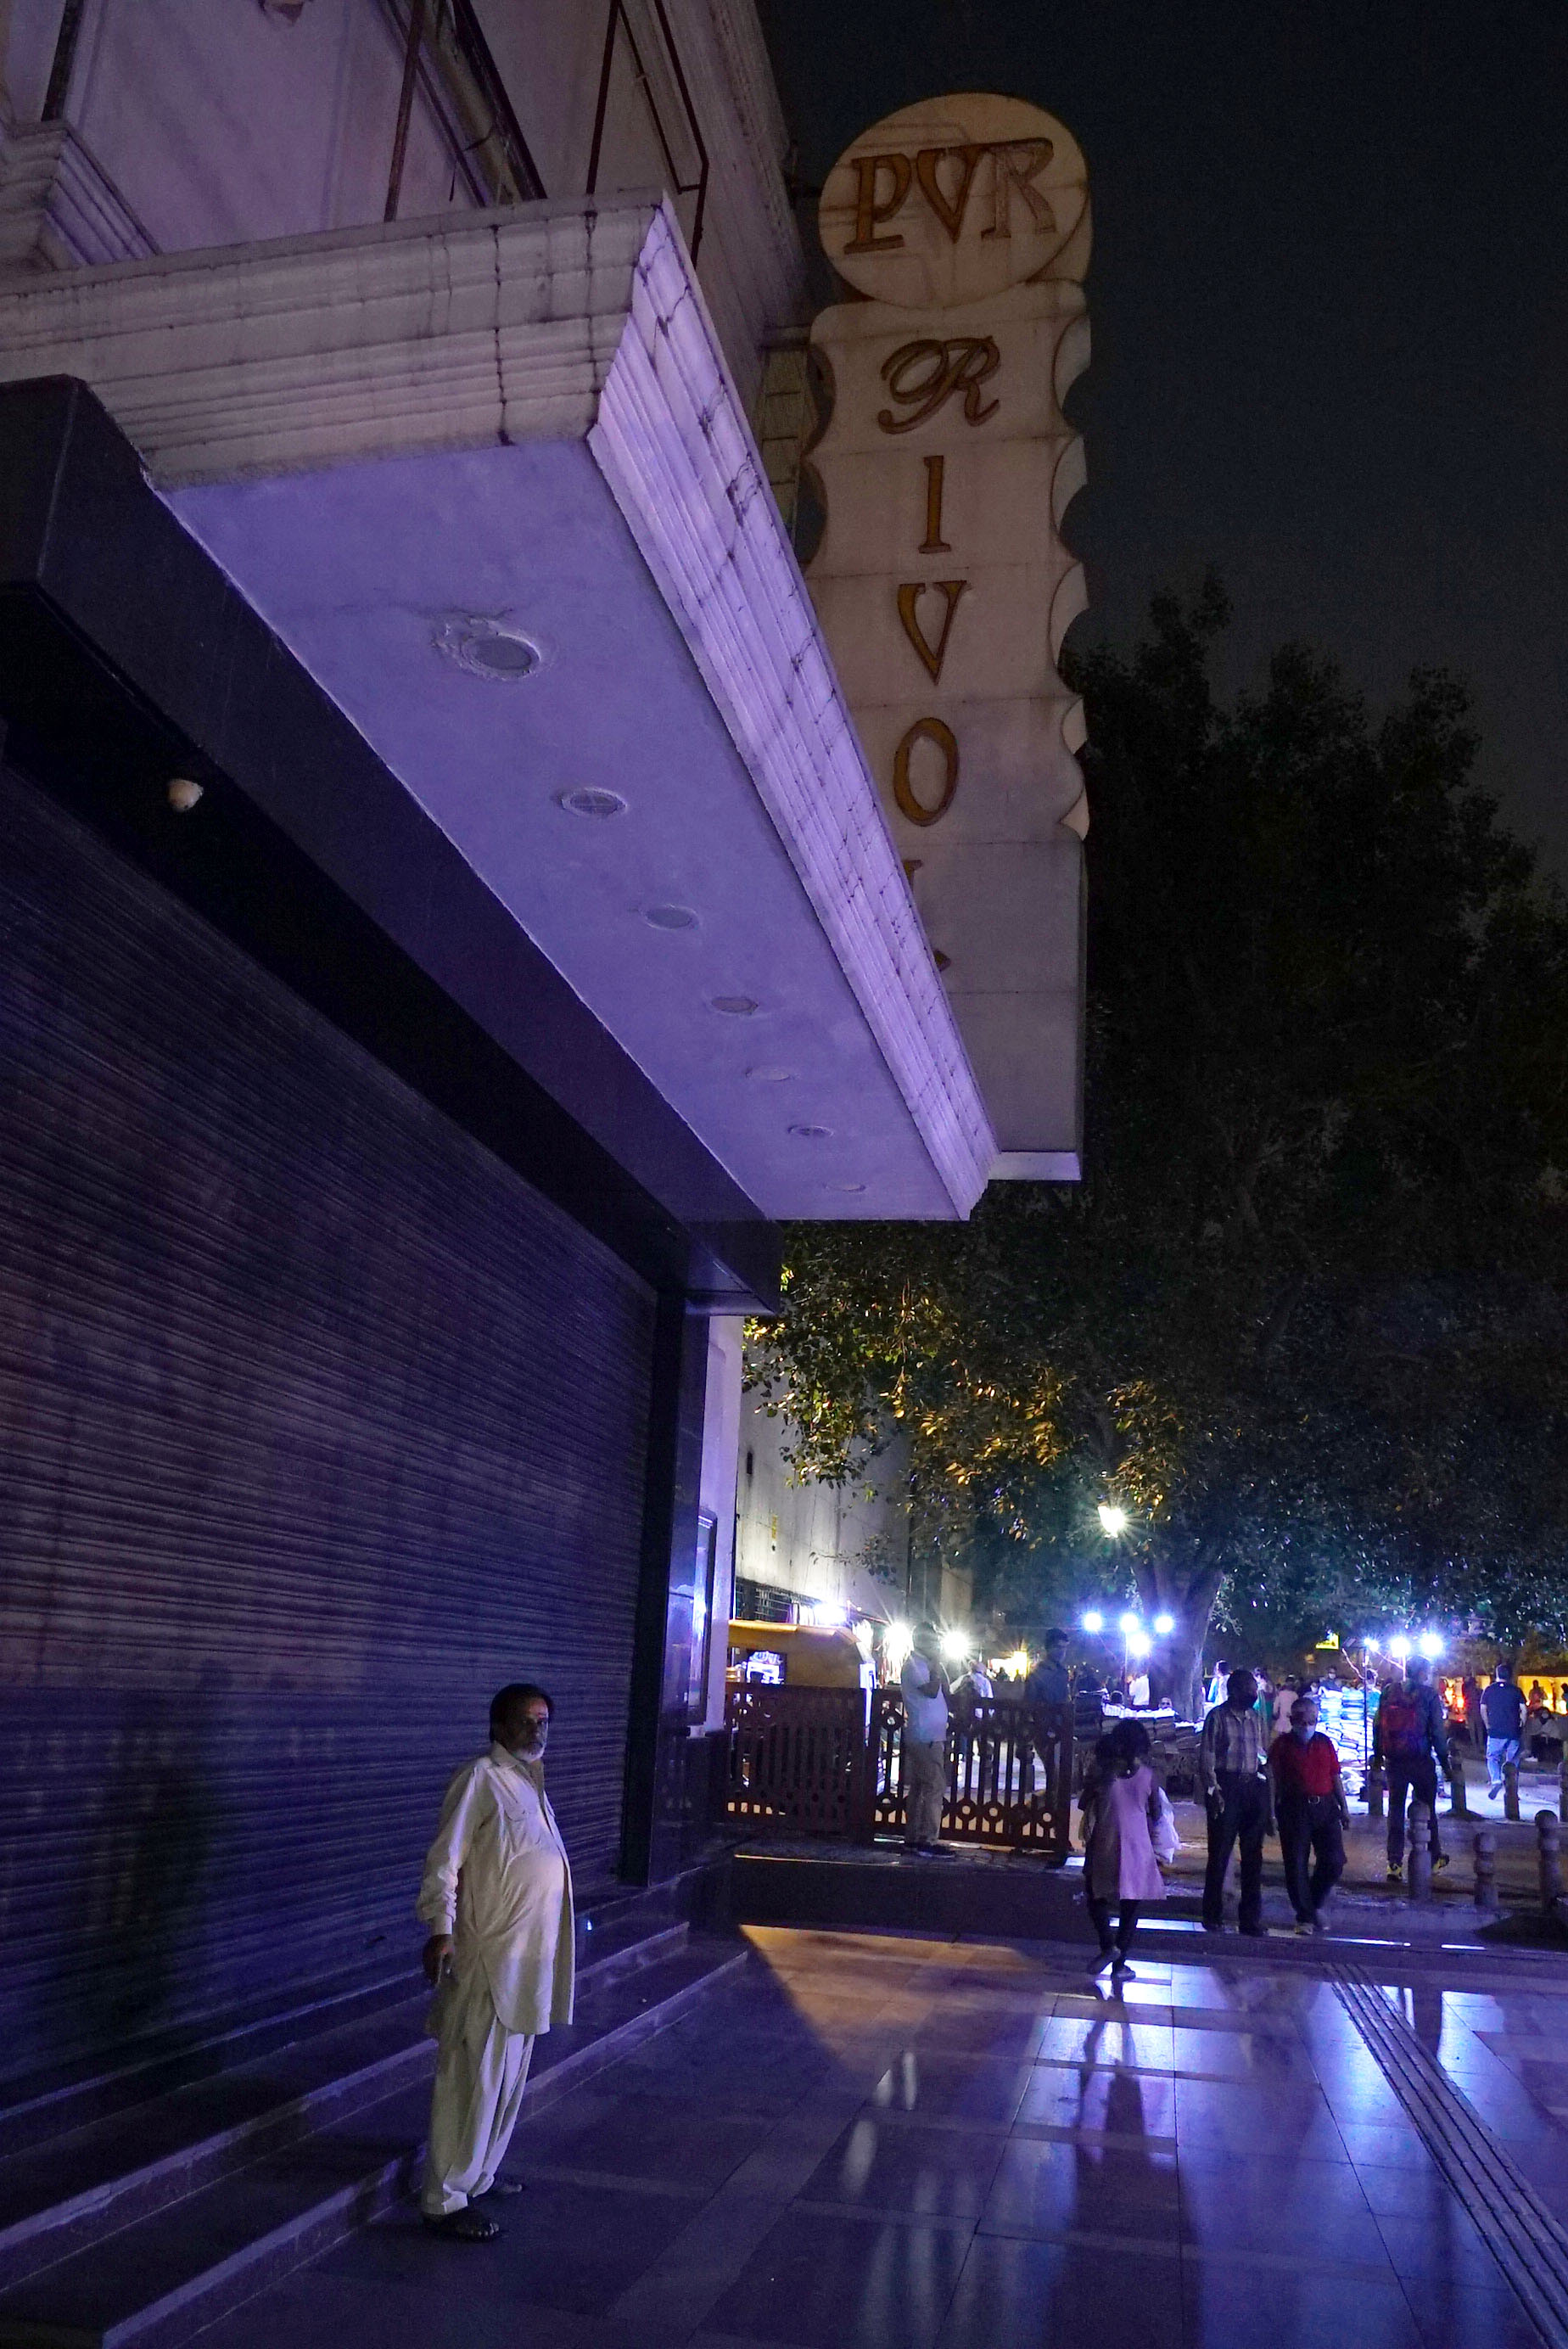 Saturday night outside a shuttered PVR Rivoli in Connaught Place, Delhi. (Veda Shastri)